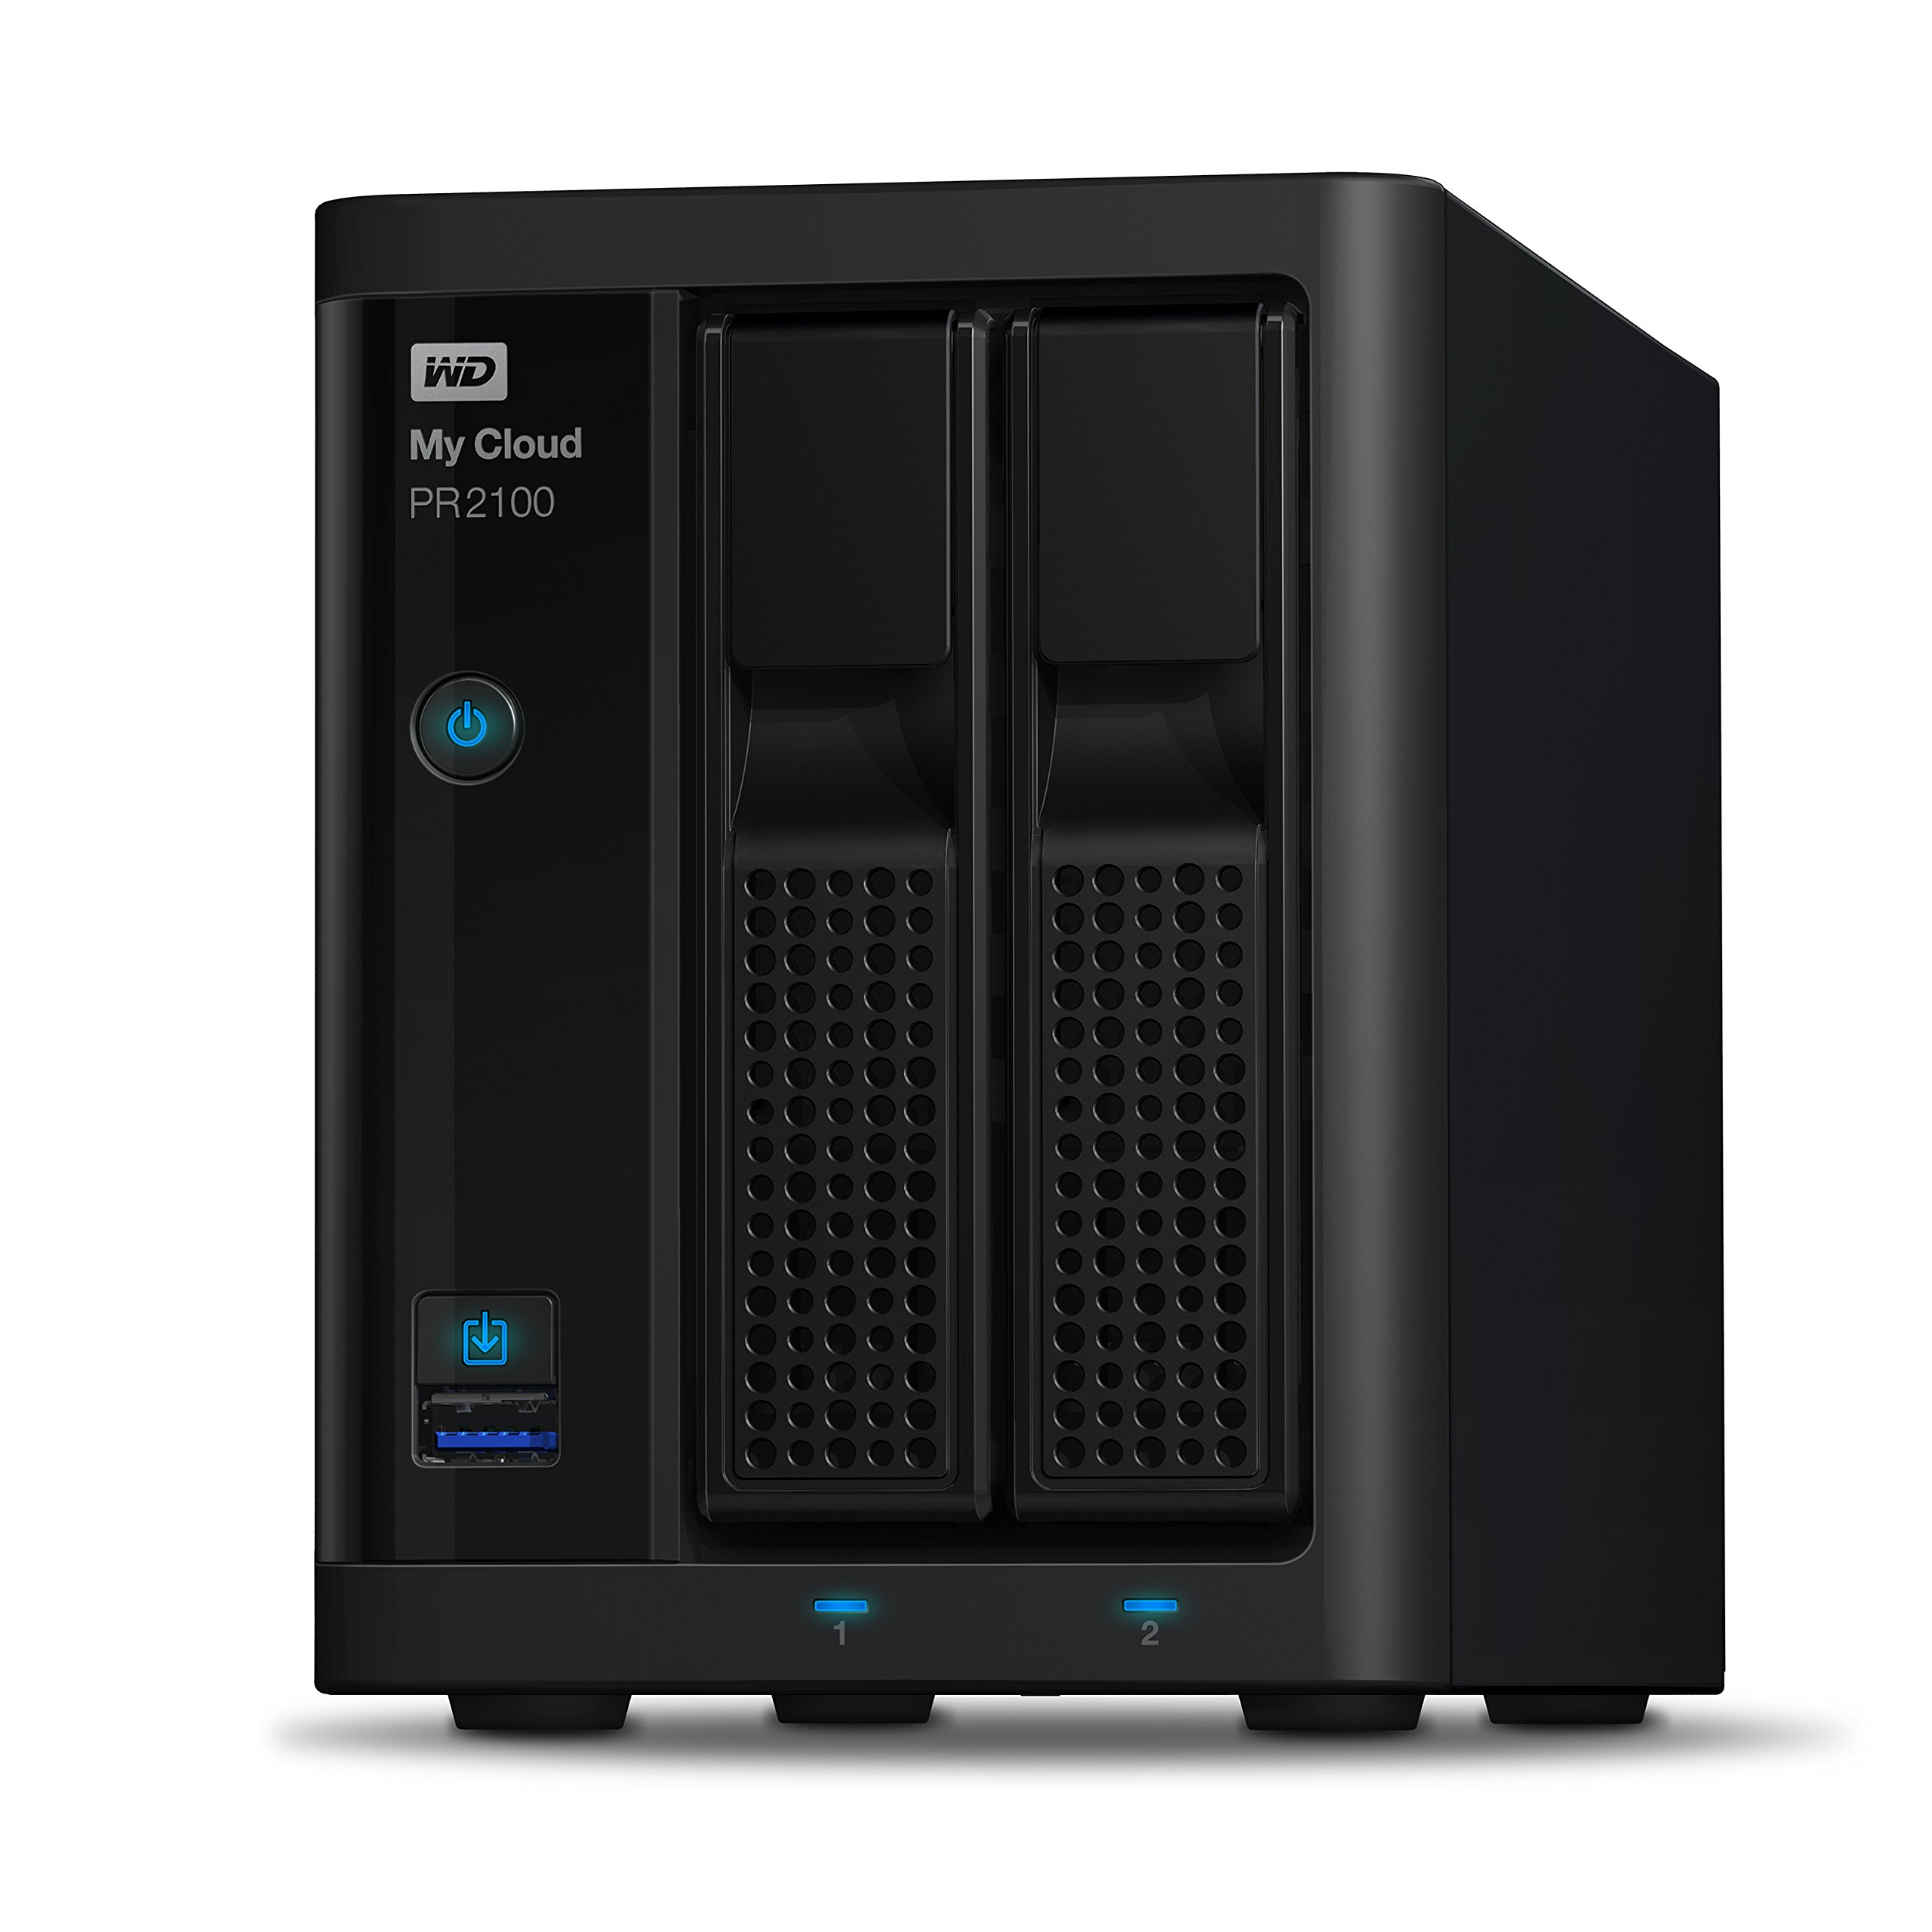 Wd 16tb My Cloud Pr2100 Pro Series Media Server With Transcoding, Nas Network Attached Storage Intel Pentium N3710... by Western Digital